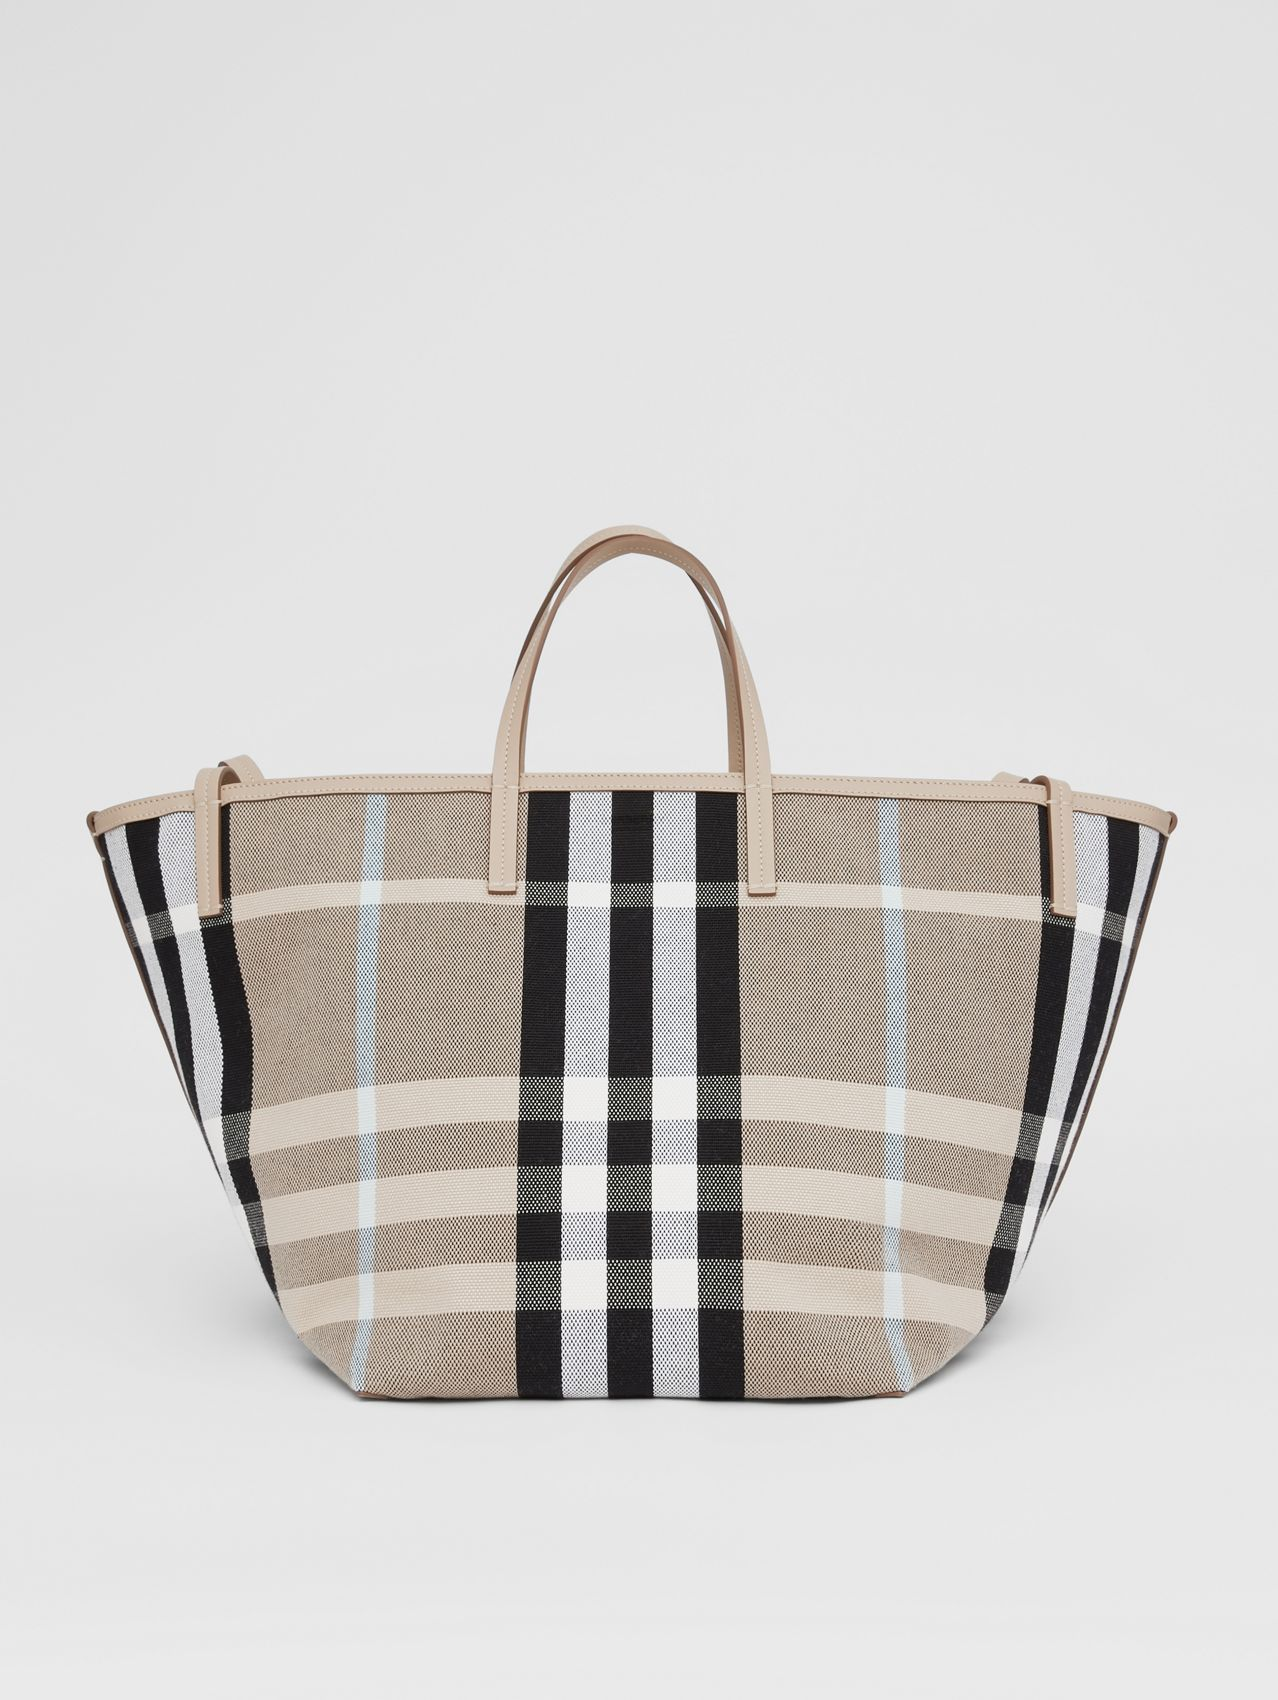 Medium Check Canvas Beach Tote in Dusty Sand/soft Fawn